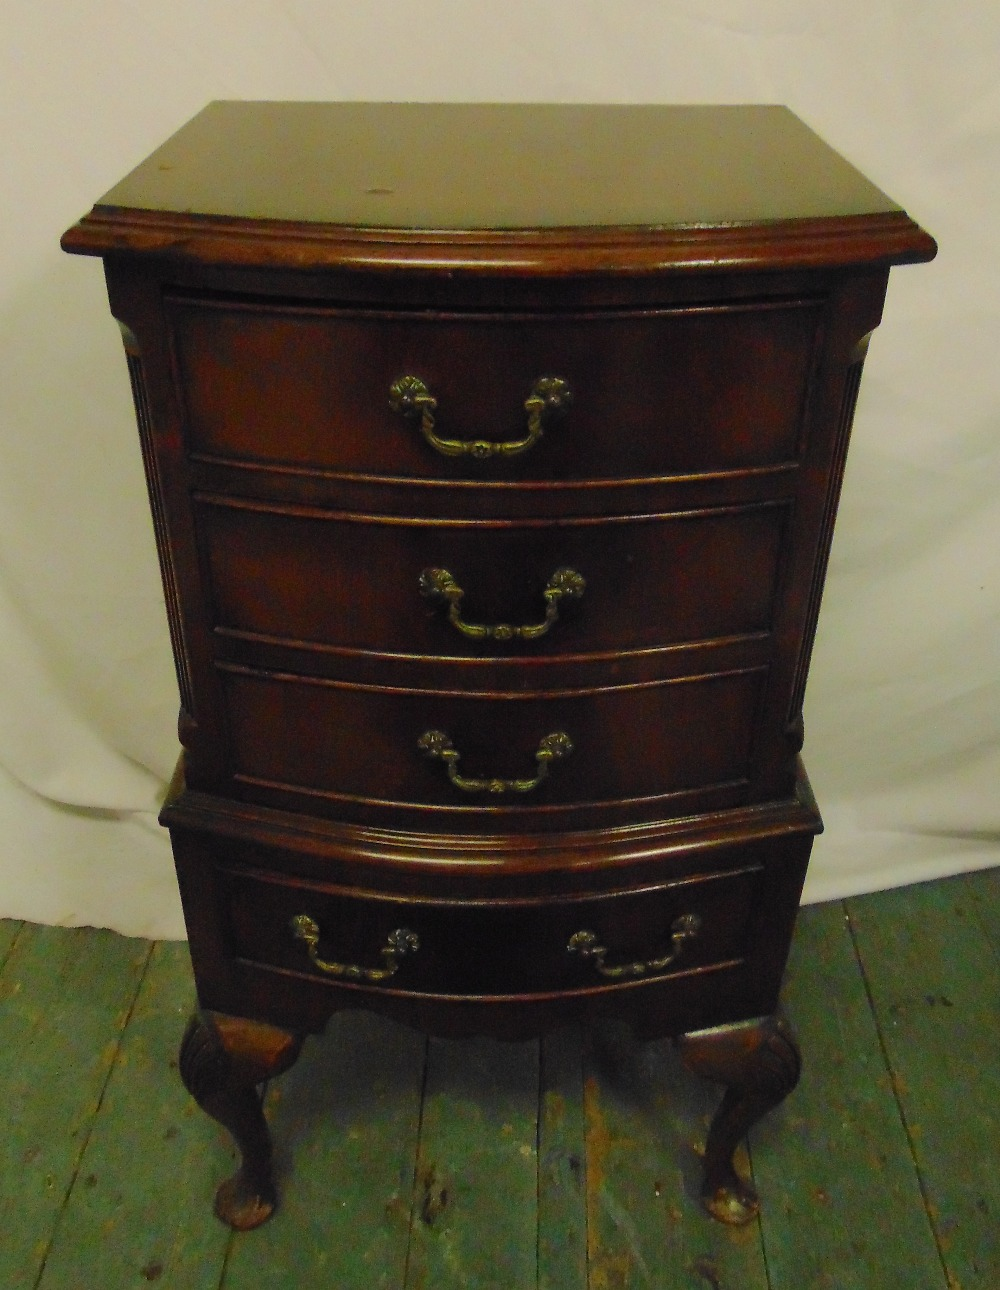 Lot 11 - A rectangular mahogany chest of four drawers with swing handles on cabriole legs, 76 x 39 x 32cm